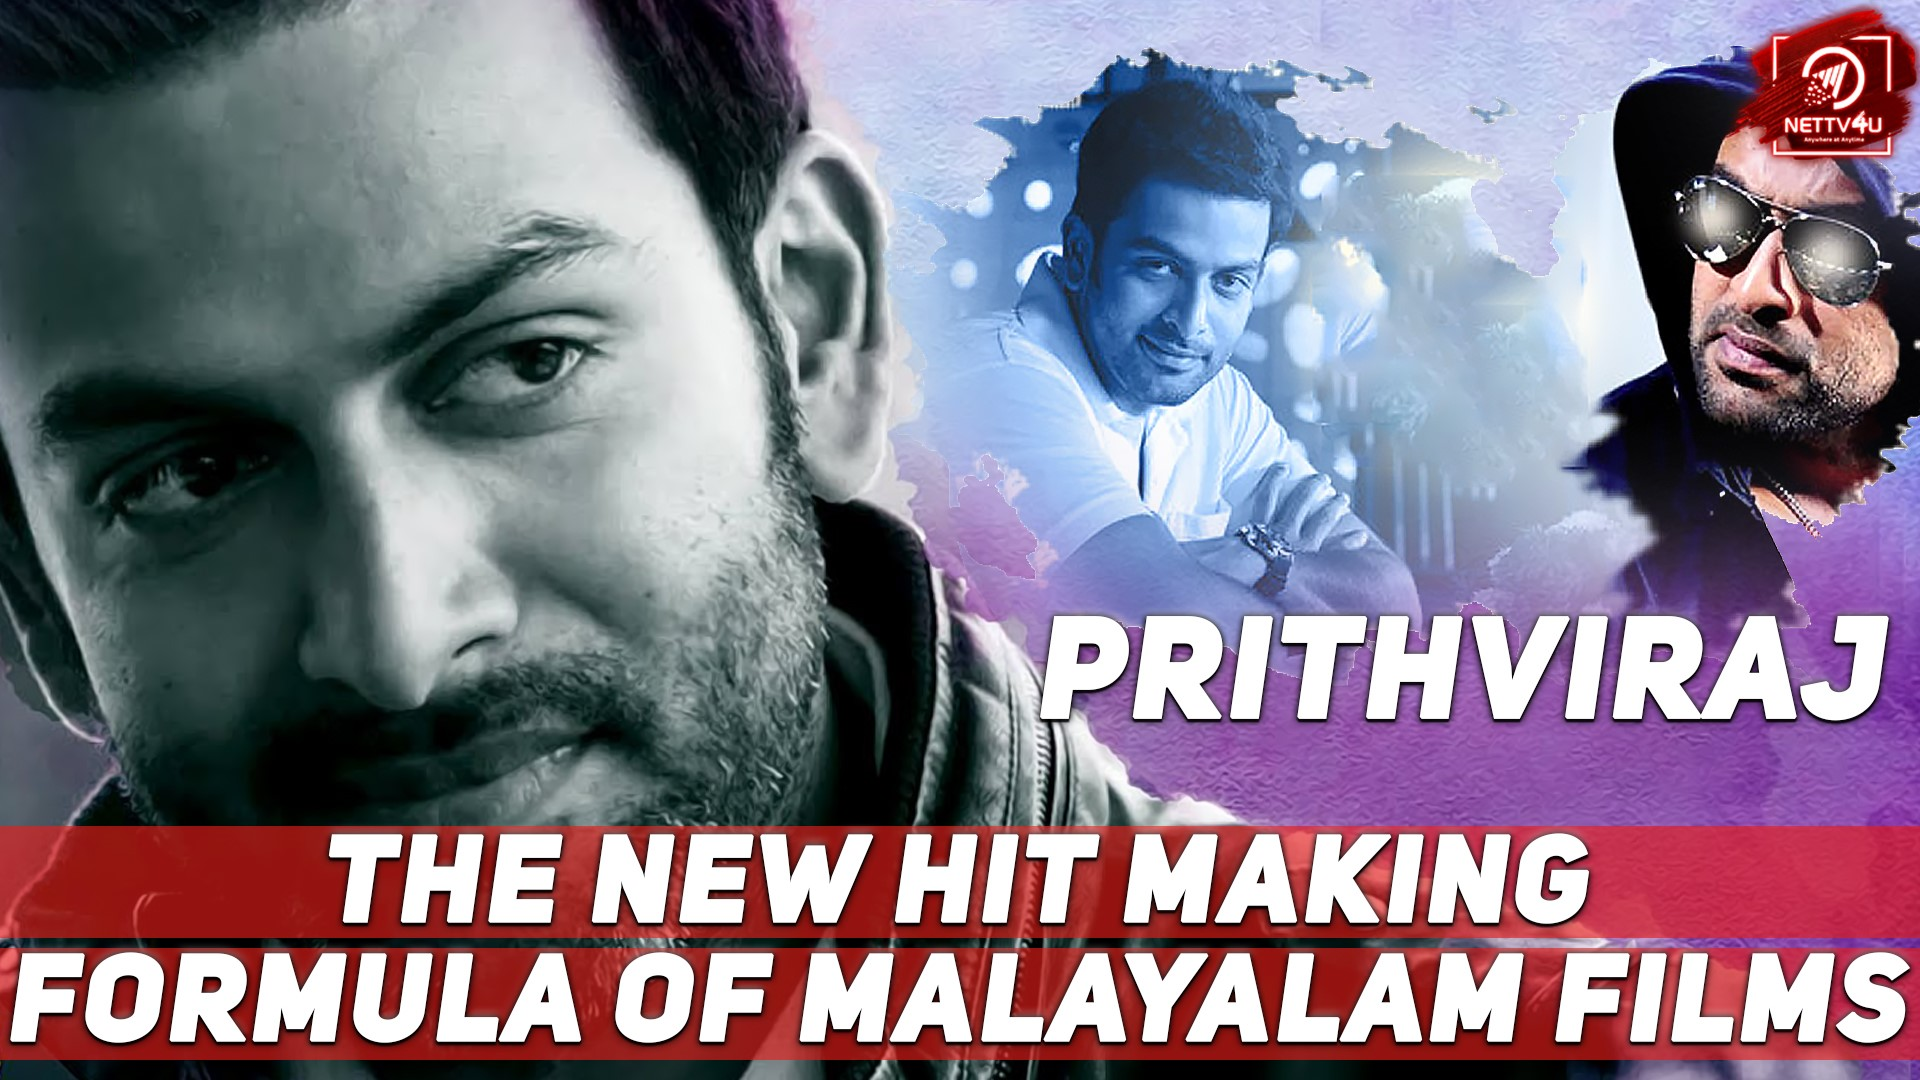 Prithviraj - The New Hit Making Formula Of Malayalam Films